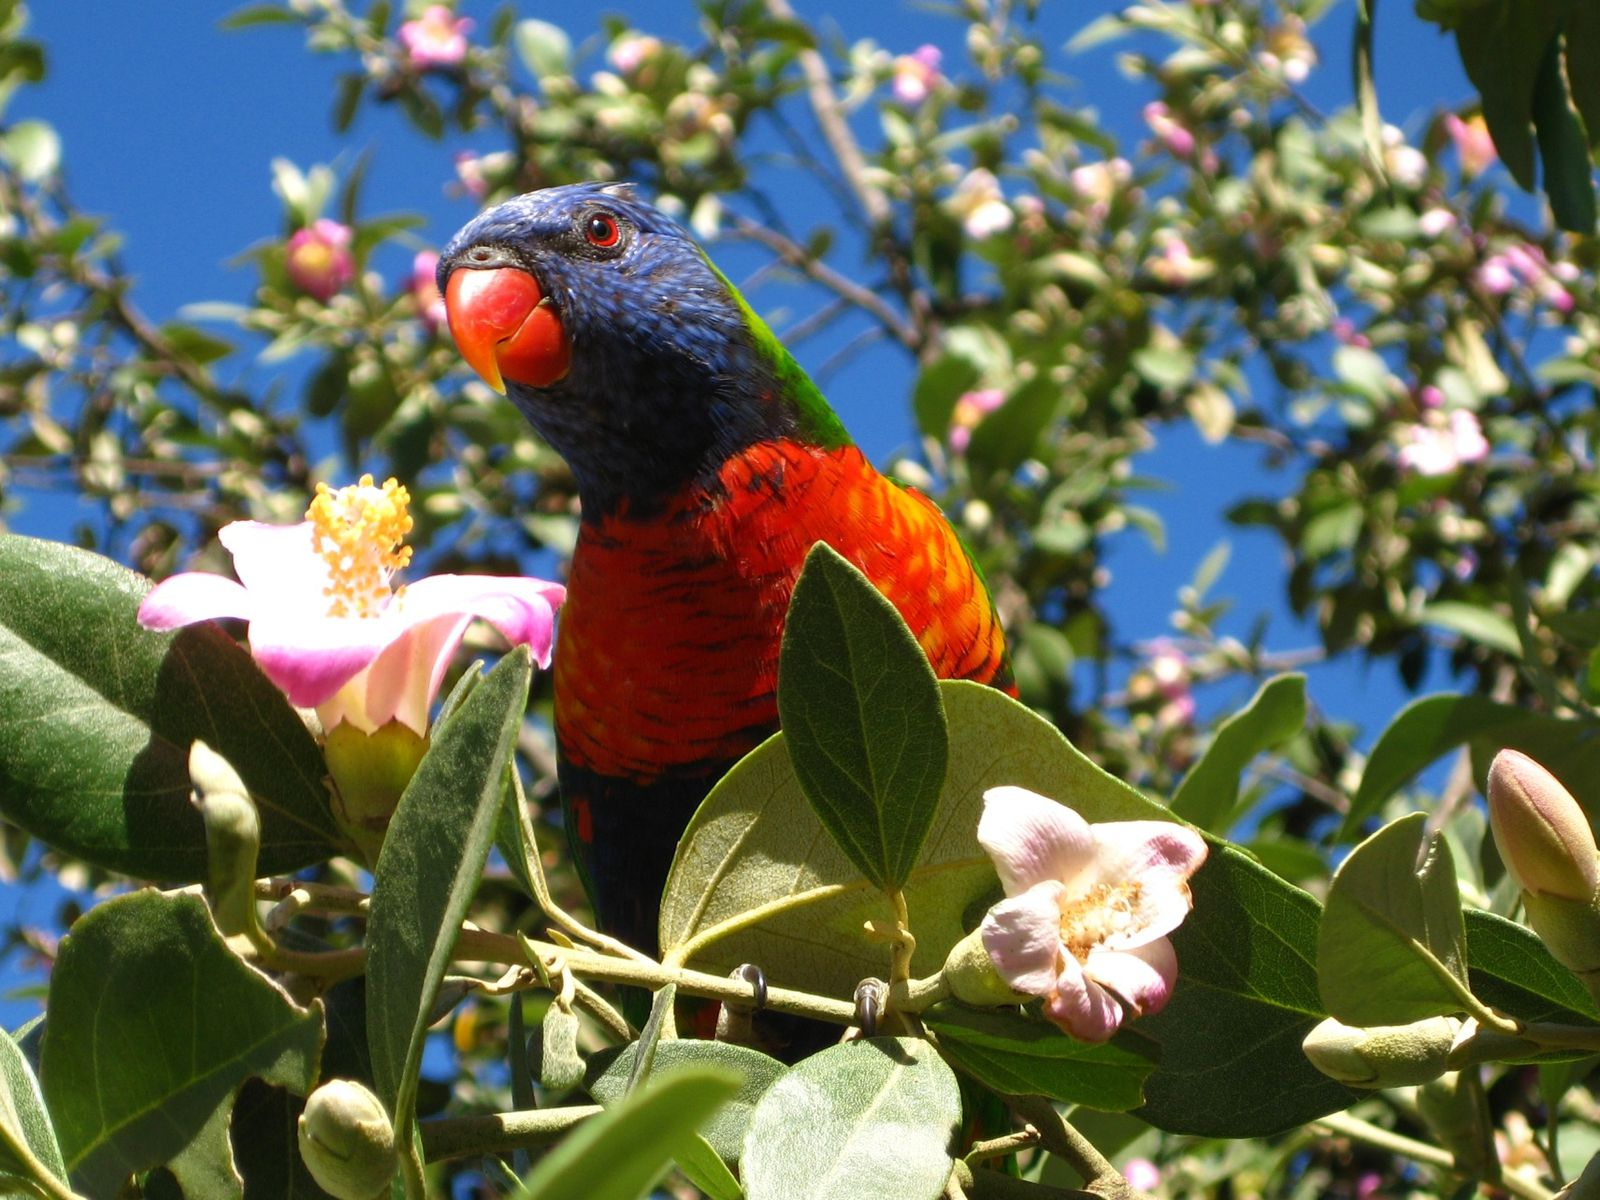 the rainbow lorikeet and the sulphur Rainbow lorikeets also need their diet supplemented with fresh fruit and vegetables on a daily basis spinach or silverbeet leaves are important to provide calcium for the bird spinach or silverbeet leaves are important to provide calcium for the bird.